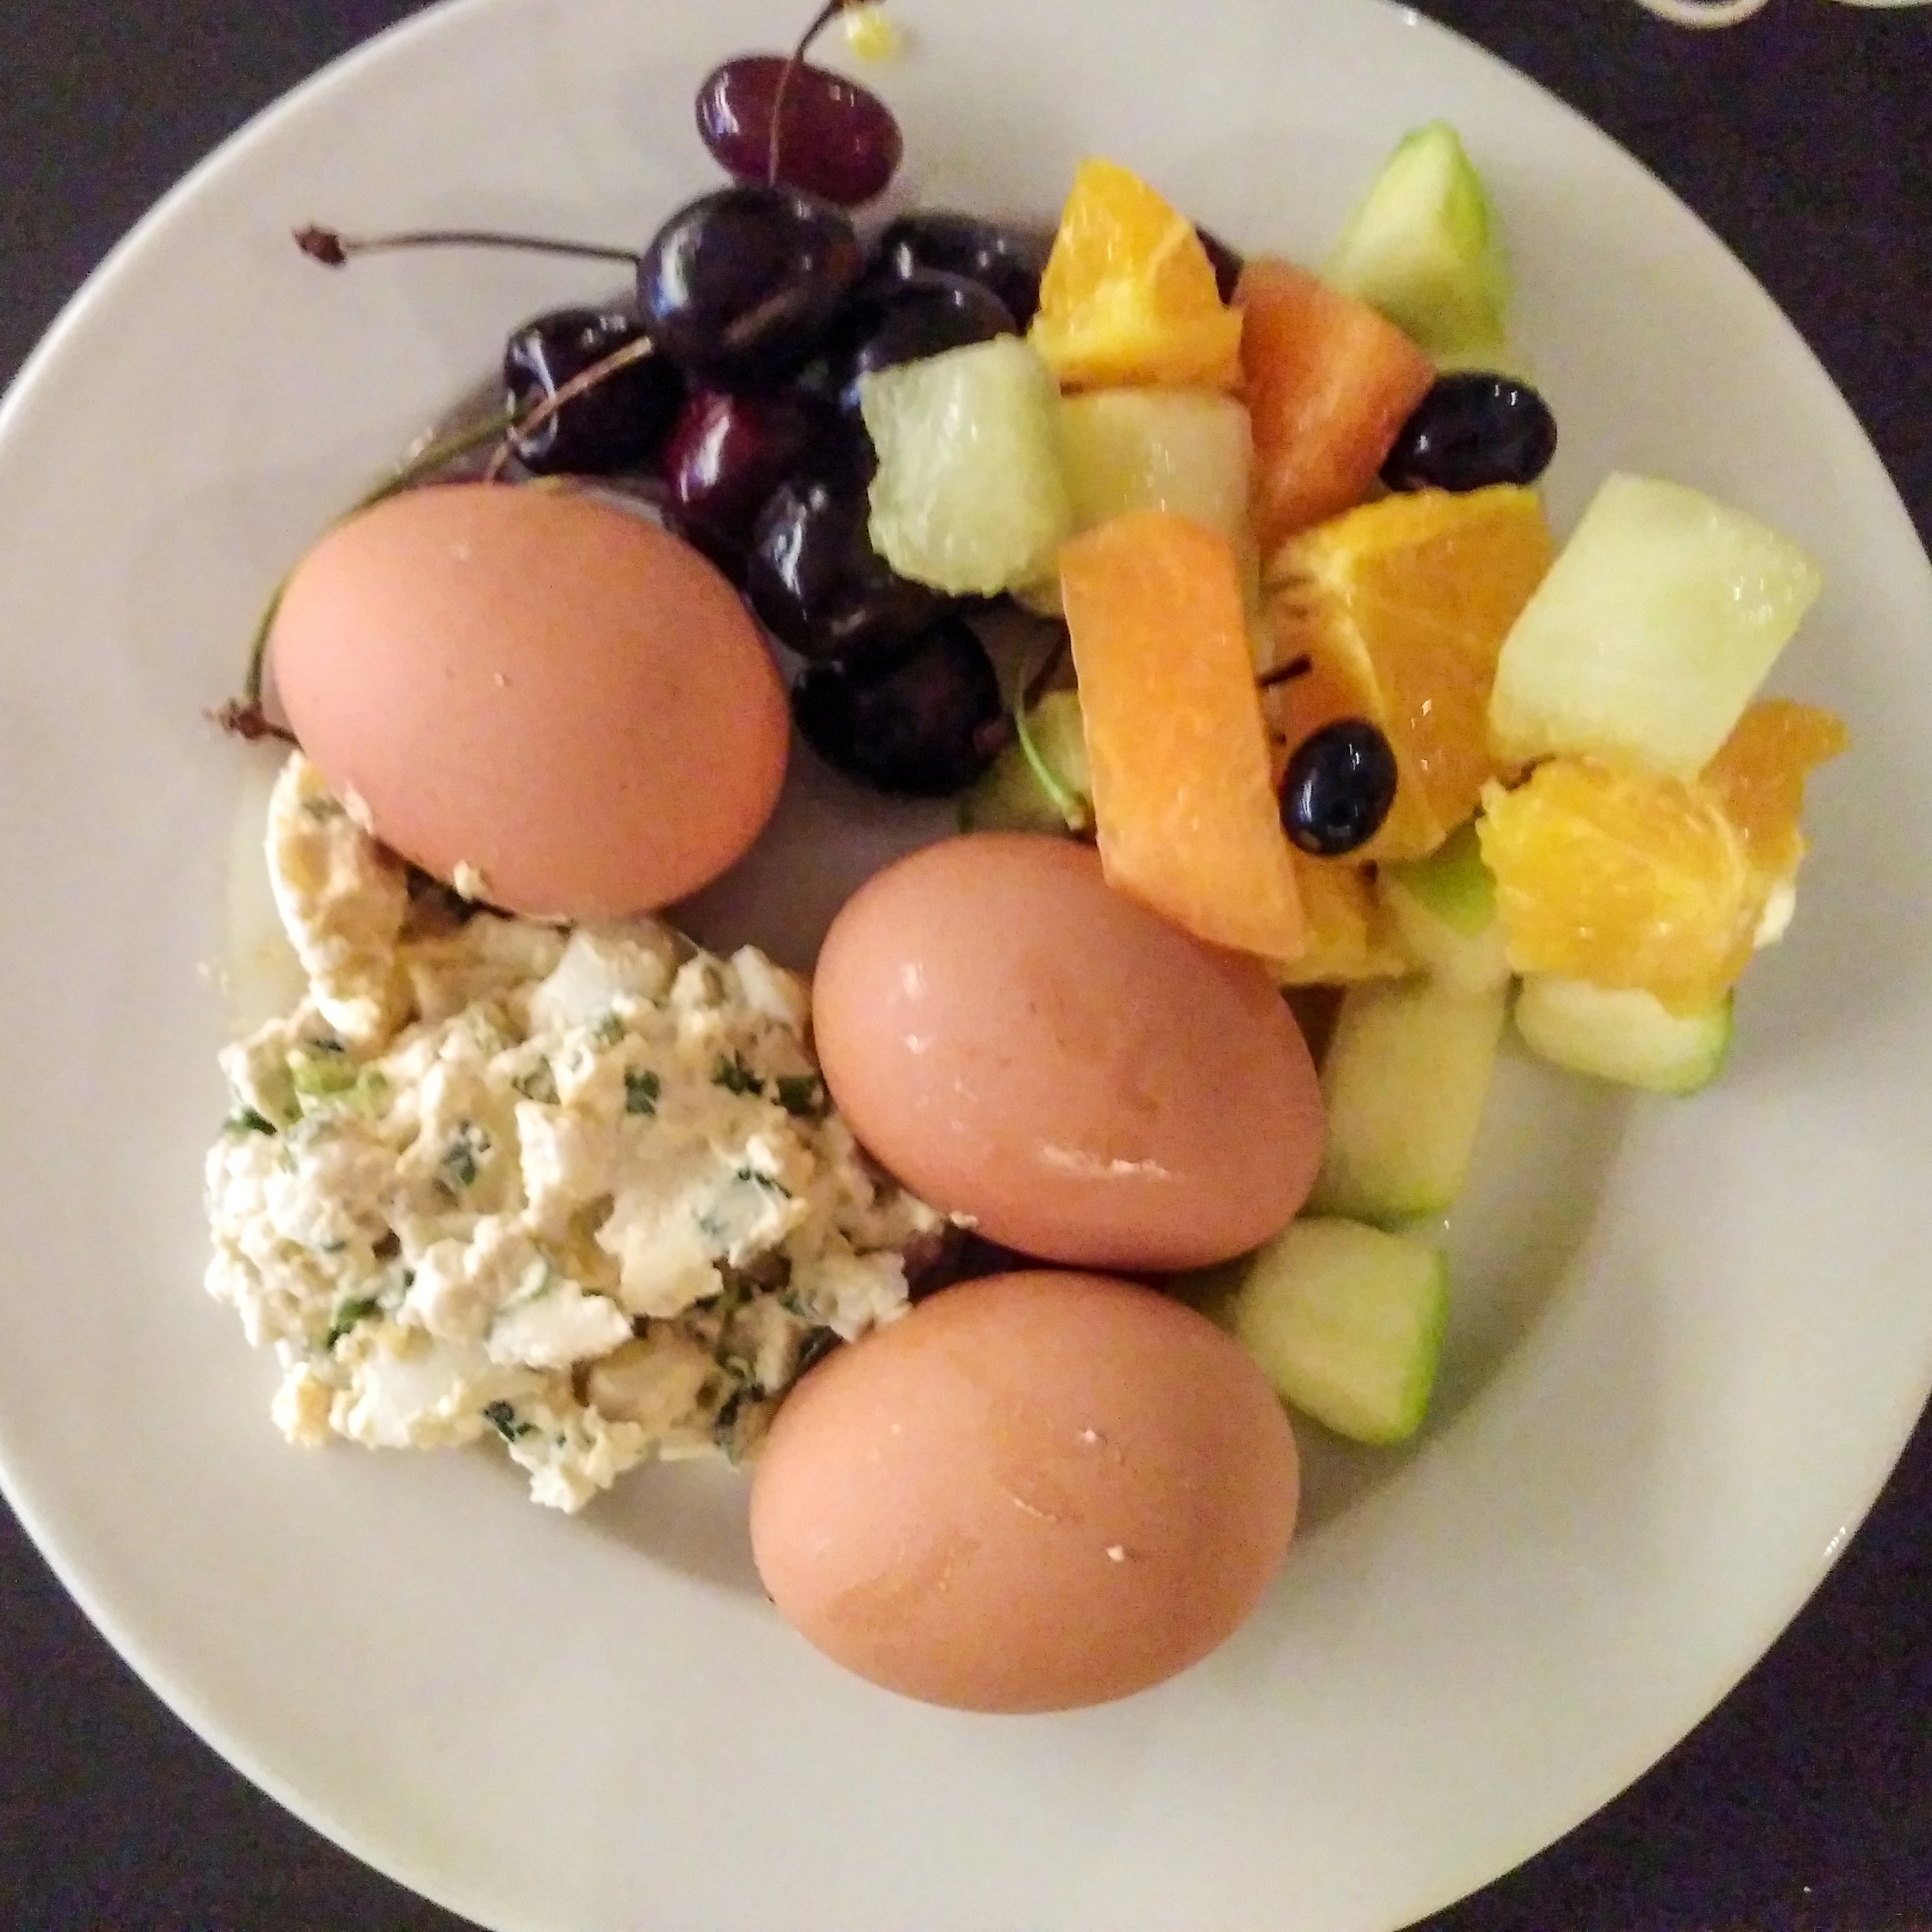 Bike racing, Tour de Pologne, music, playlist, health, fitness, pro cycling, cycling, breakfast, eggs, healthy eating